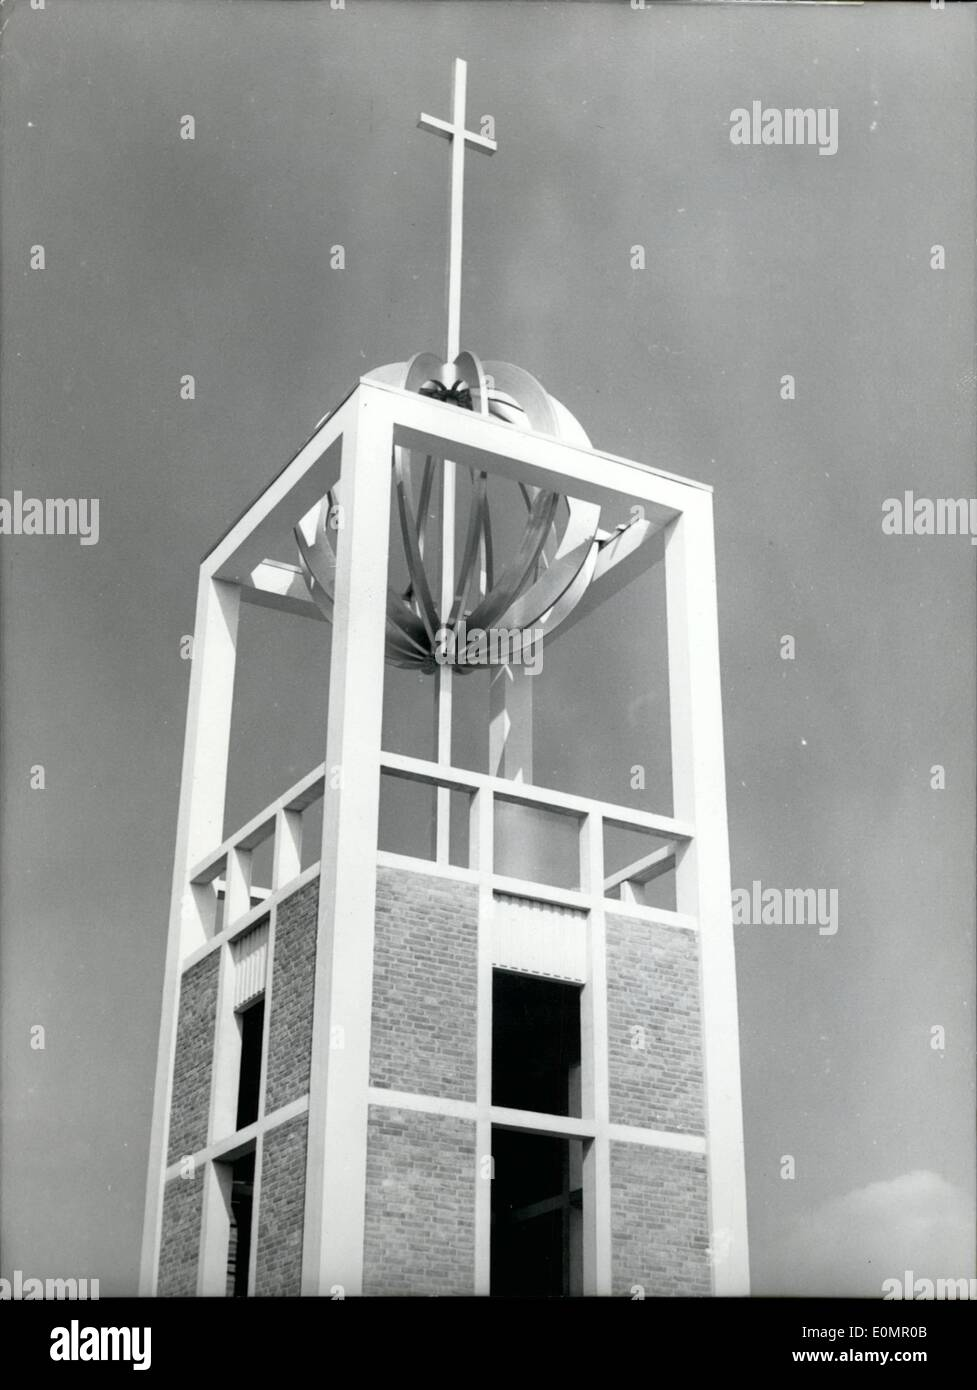 May 05, 1956 - Of Symbolical meaning : Is the cross over the globe on the new protestant church of the Zion-community in Bremen. The top of the Tower is 12m high and the symbol is made by light metal. The modern tower of the church has a high of 32m. - Stock Image